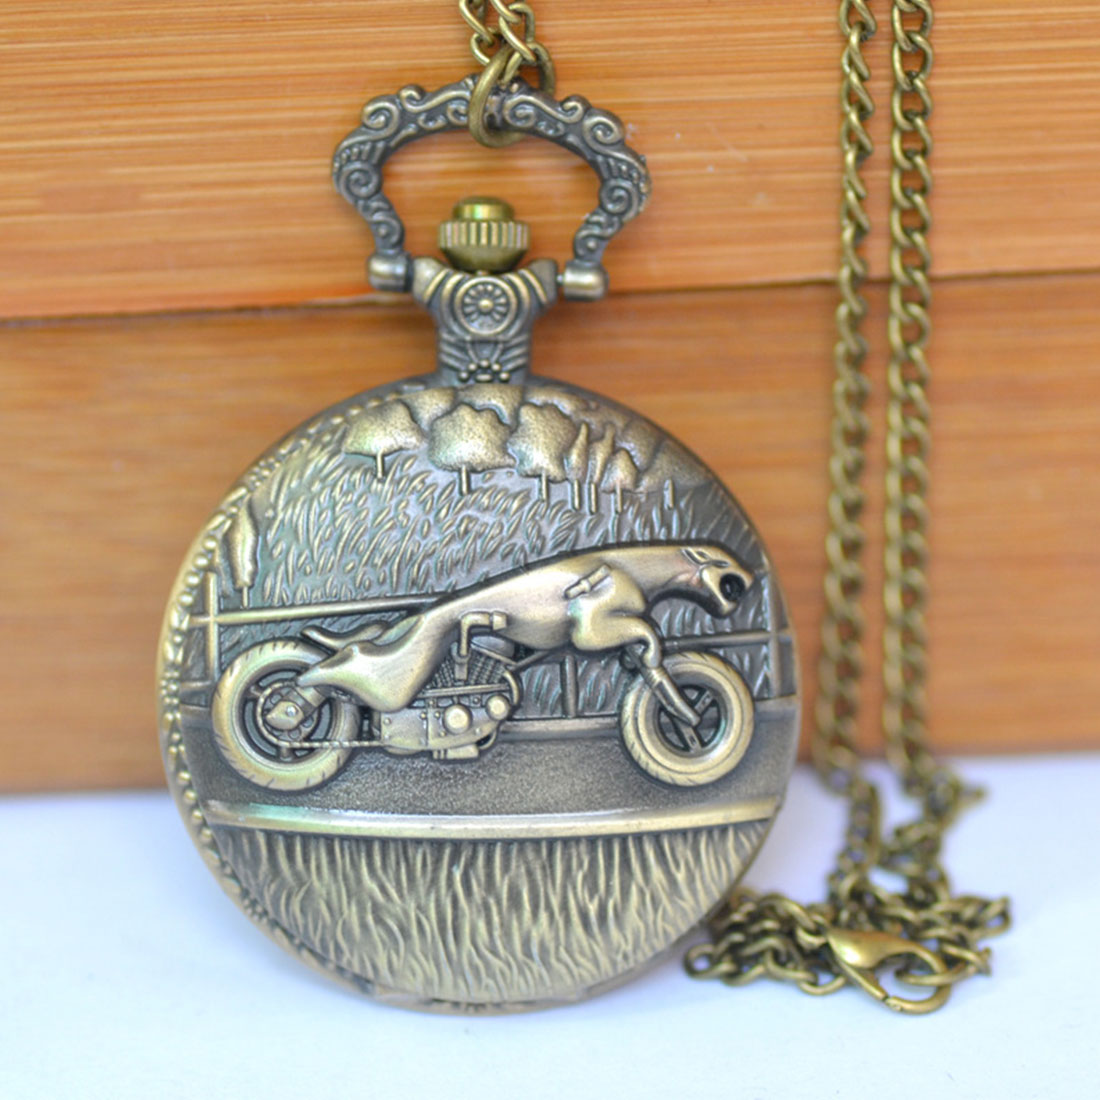 Popular Leopard Riding Motorcycle Quartz Pocket Watch Retro Innovative Design Pocket Watch Unisex Casual Wild Table